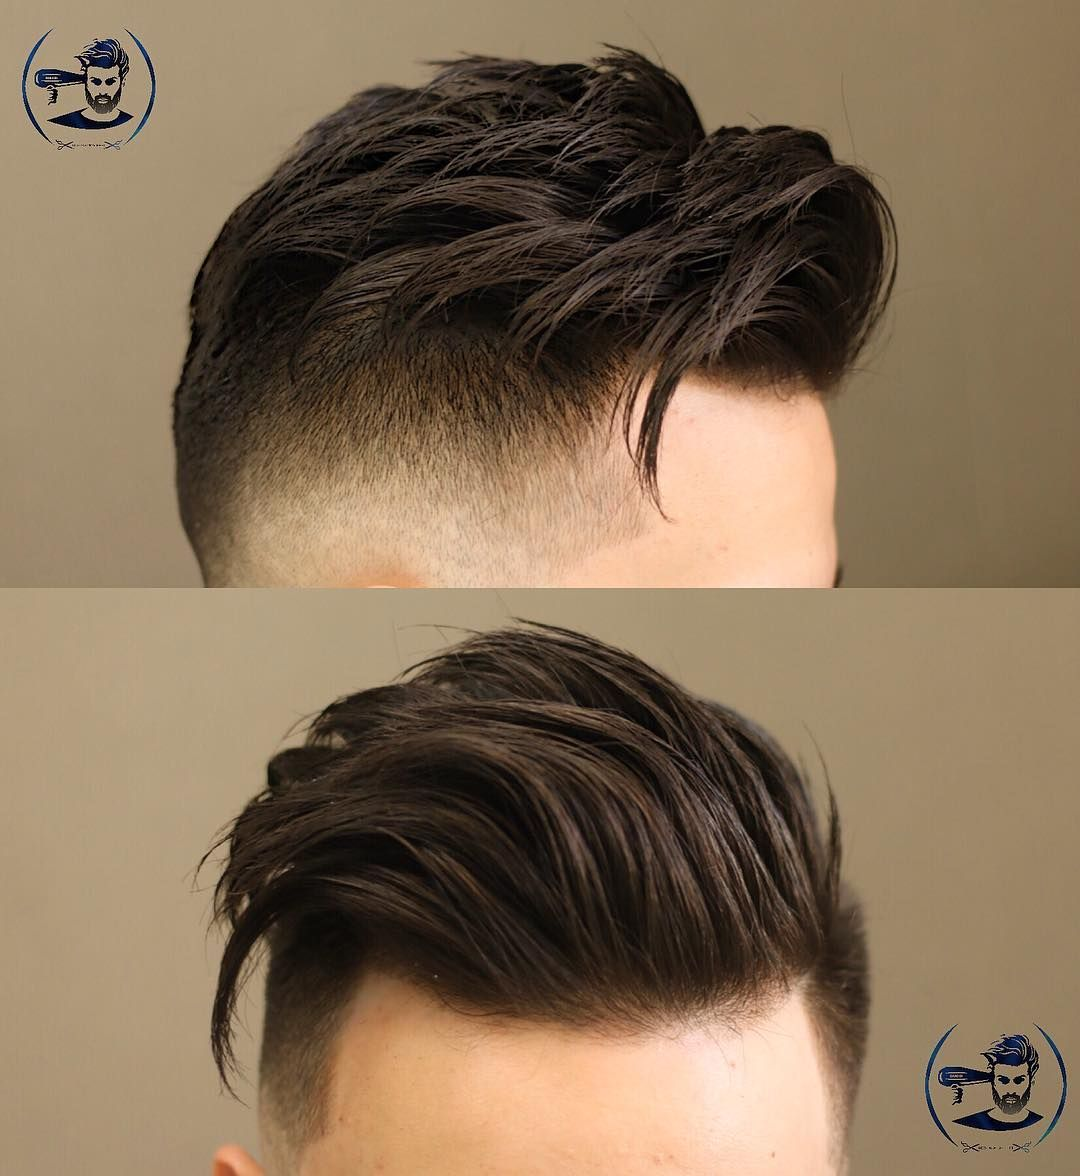 sexy hair styles men best 44 hairstyles for s haircuts trends 5010 | 7a907ffb47390541152c1514fe72ca06